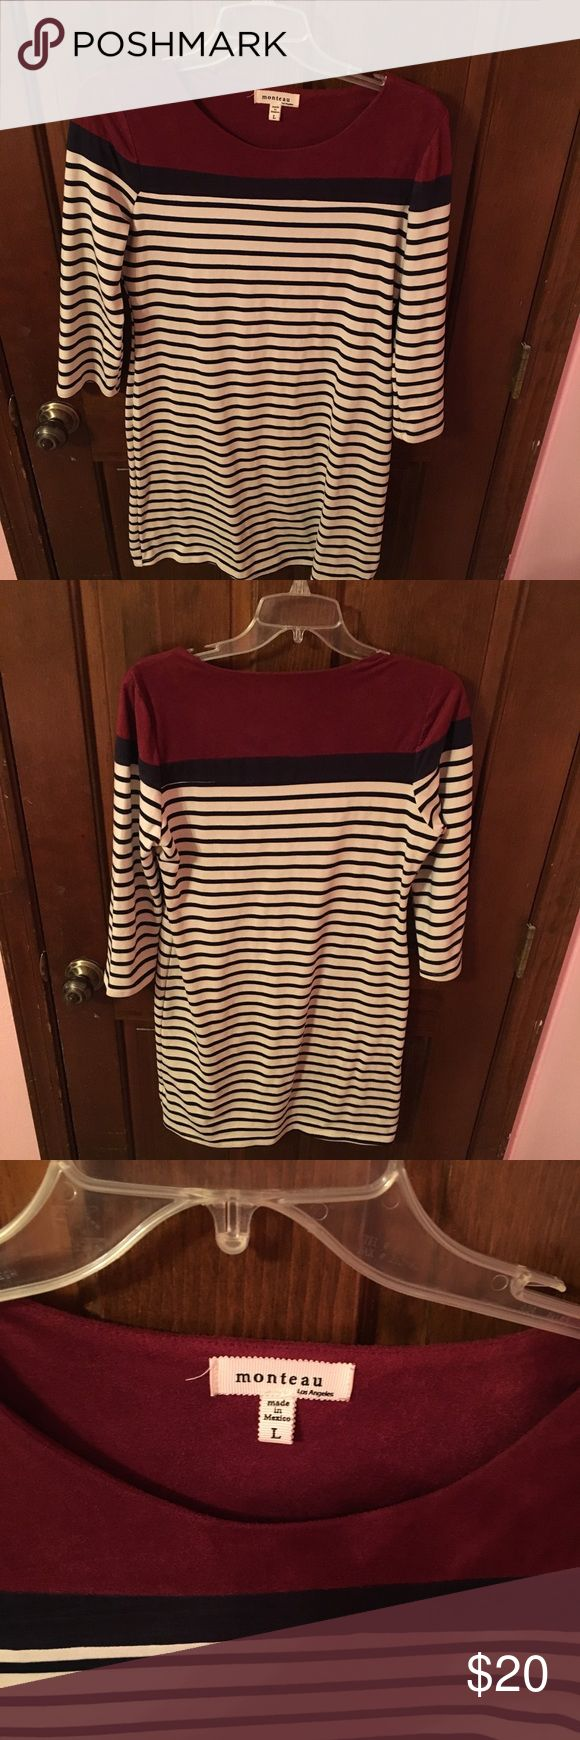 Red & Navy Striped Dress Worn twice and in perfect condition! No stains, tears or rips! Too big for me now! :) Monteau Dresses